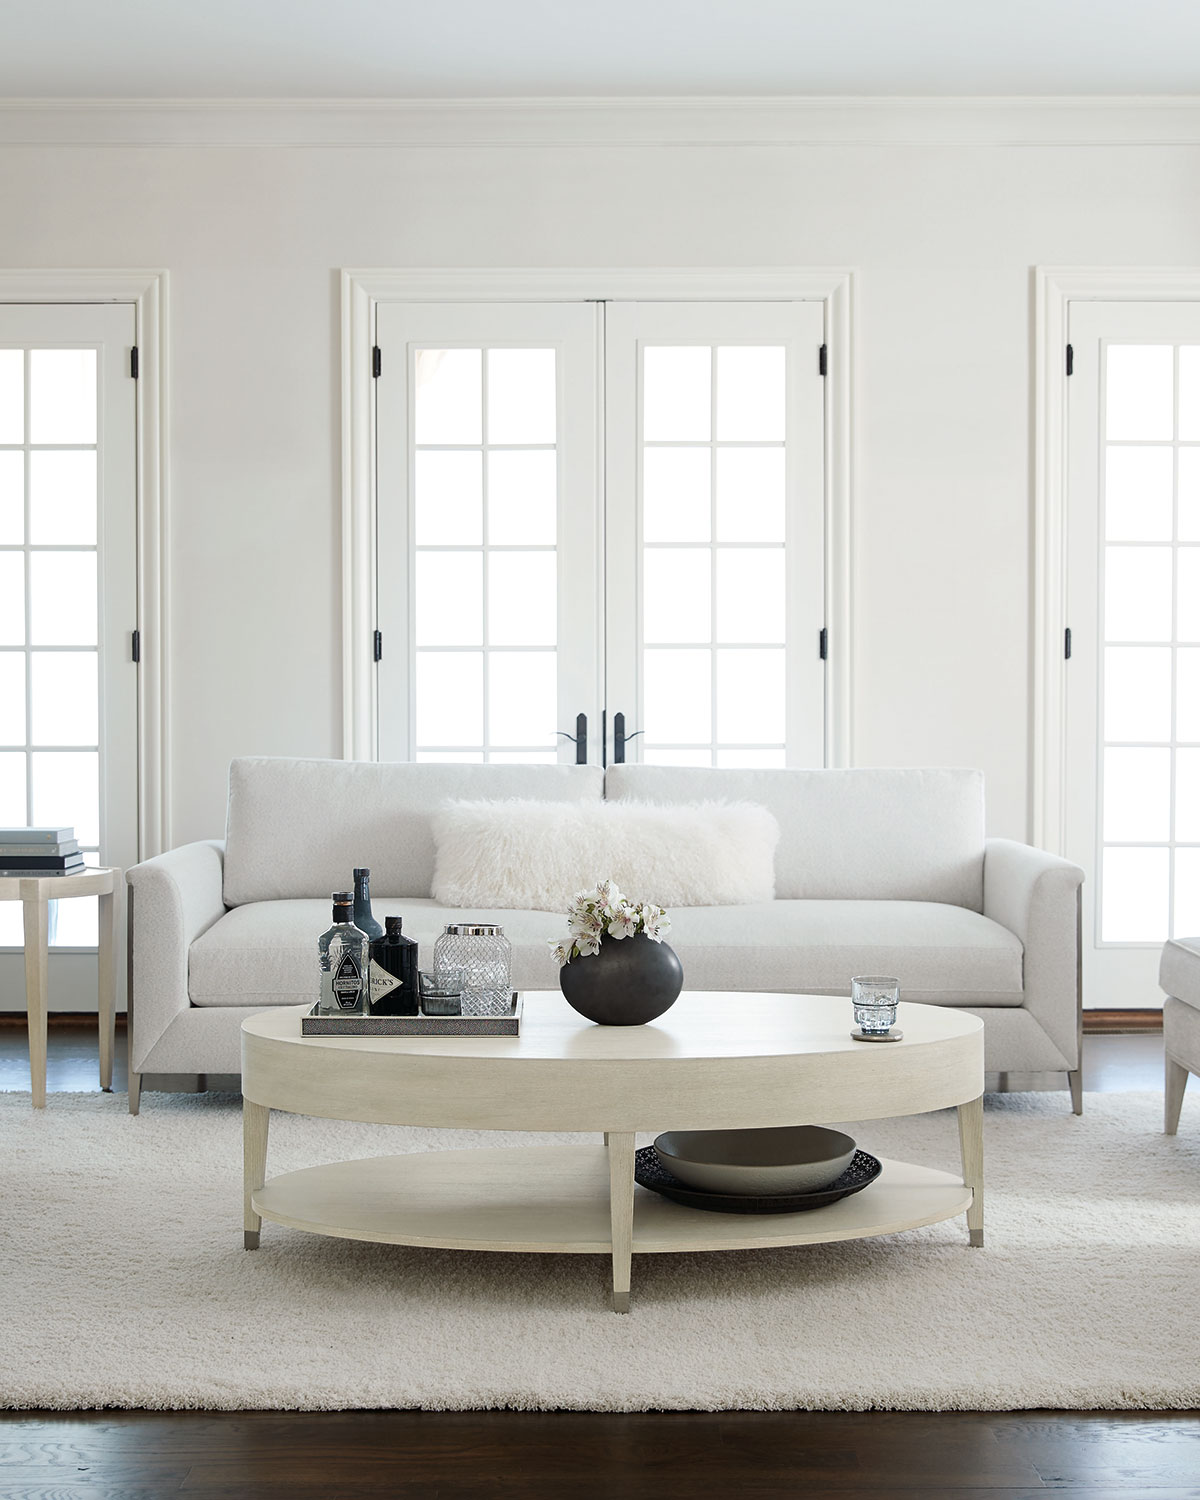 Bernhardt East Hampton Oval Coffee Table